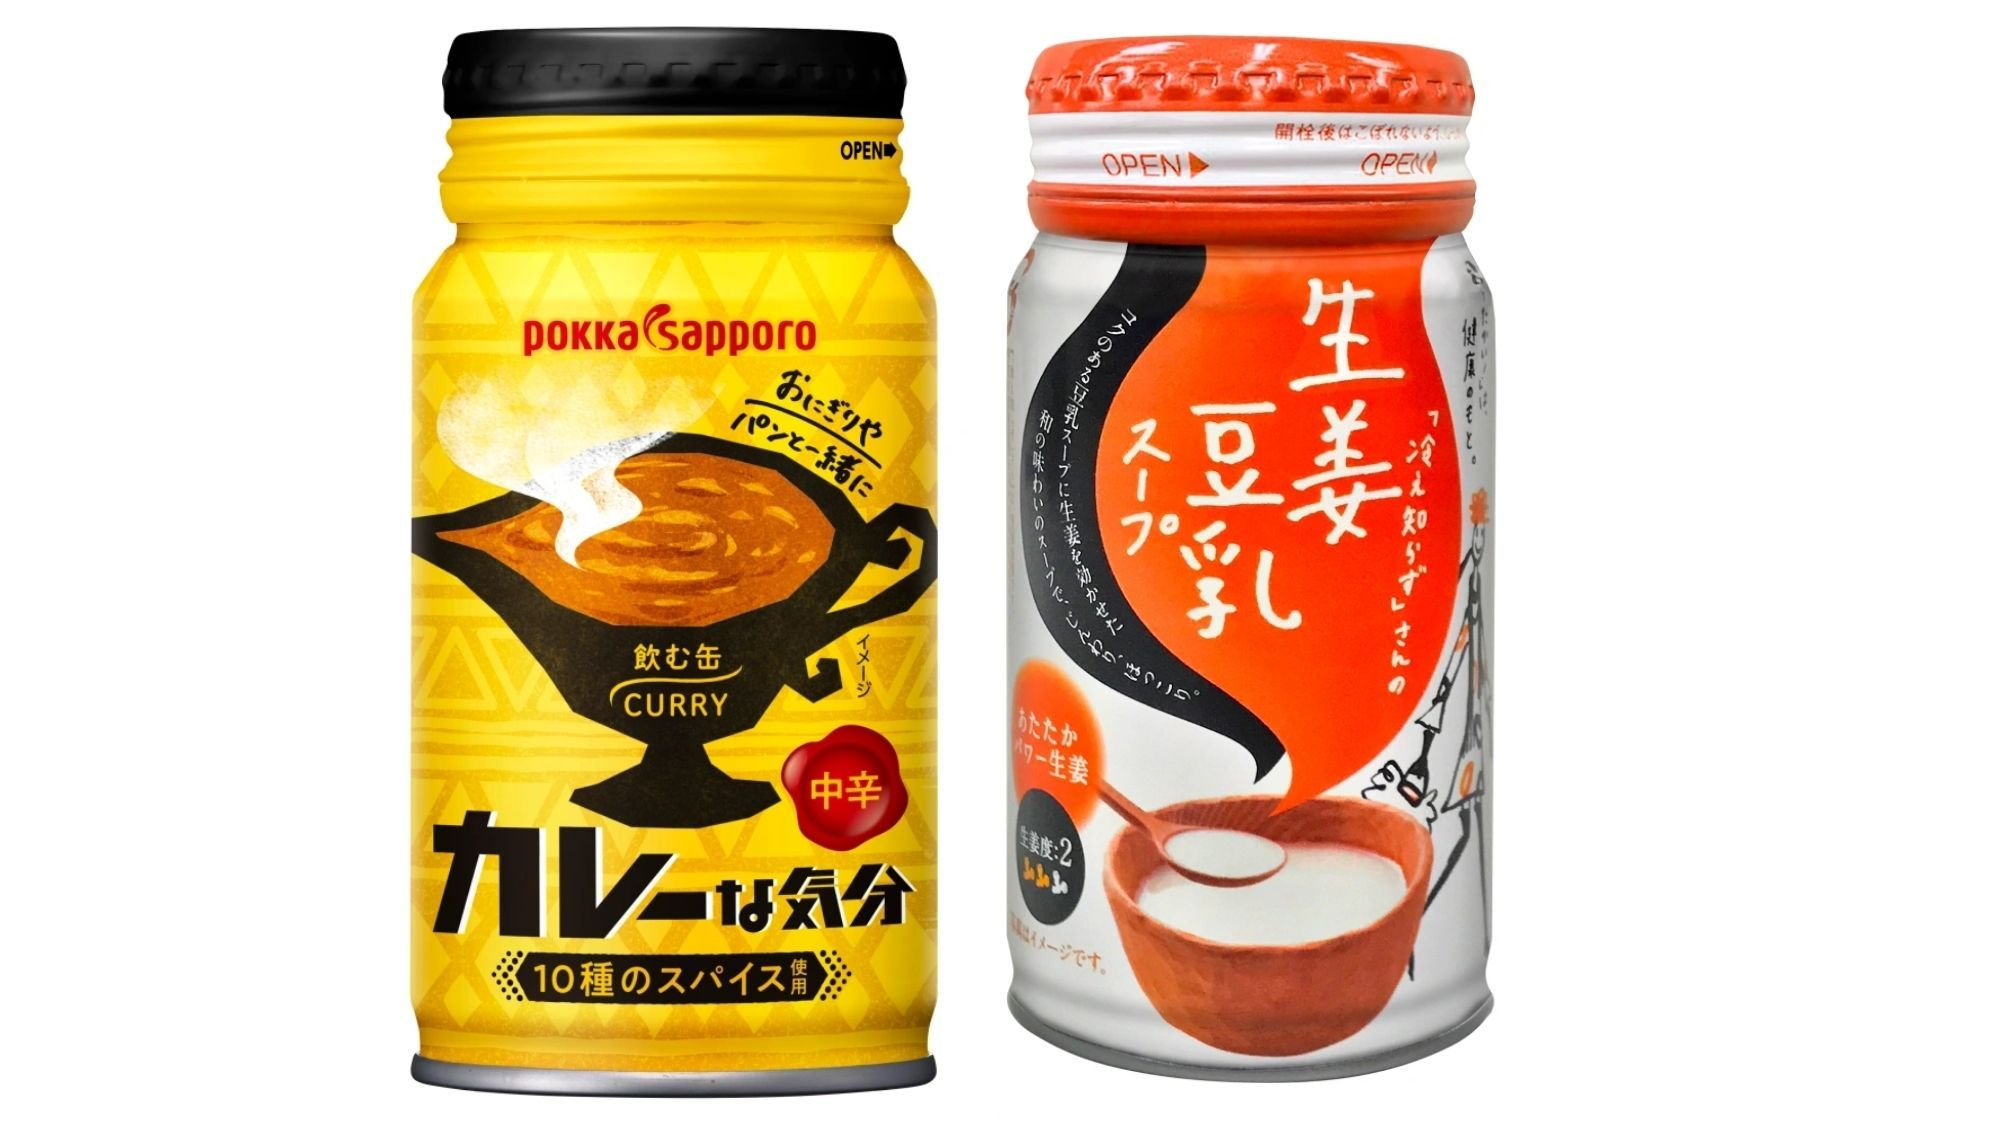 Ippudo rolls out canned ramen for commuters photo Soranews24